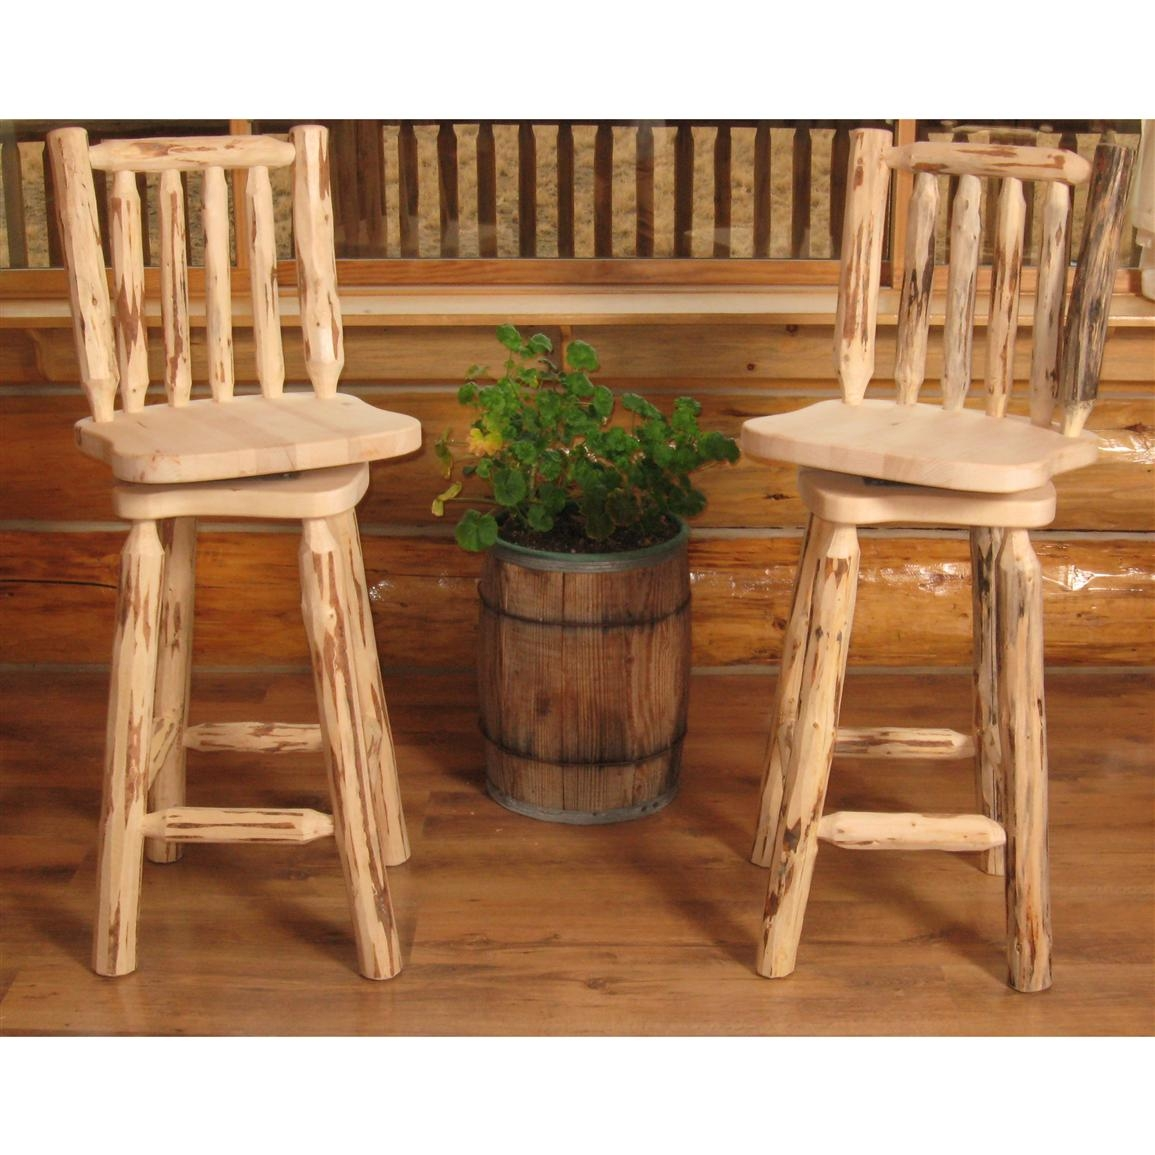 Crafted Of The Finest Aspen Logs And Strengthened With Durable Hardware,  The Stool Is Going To Be A Real Hit During Quality Times With Your Friends.